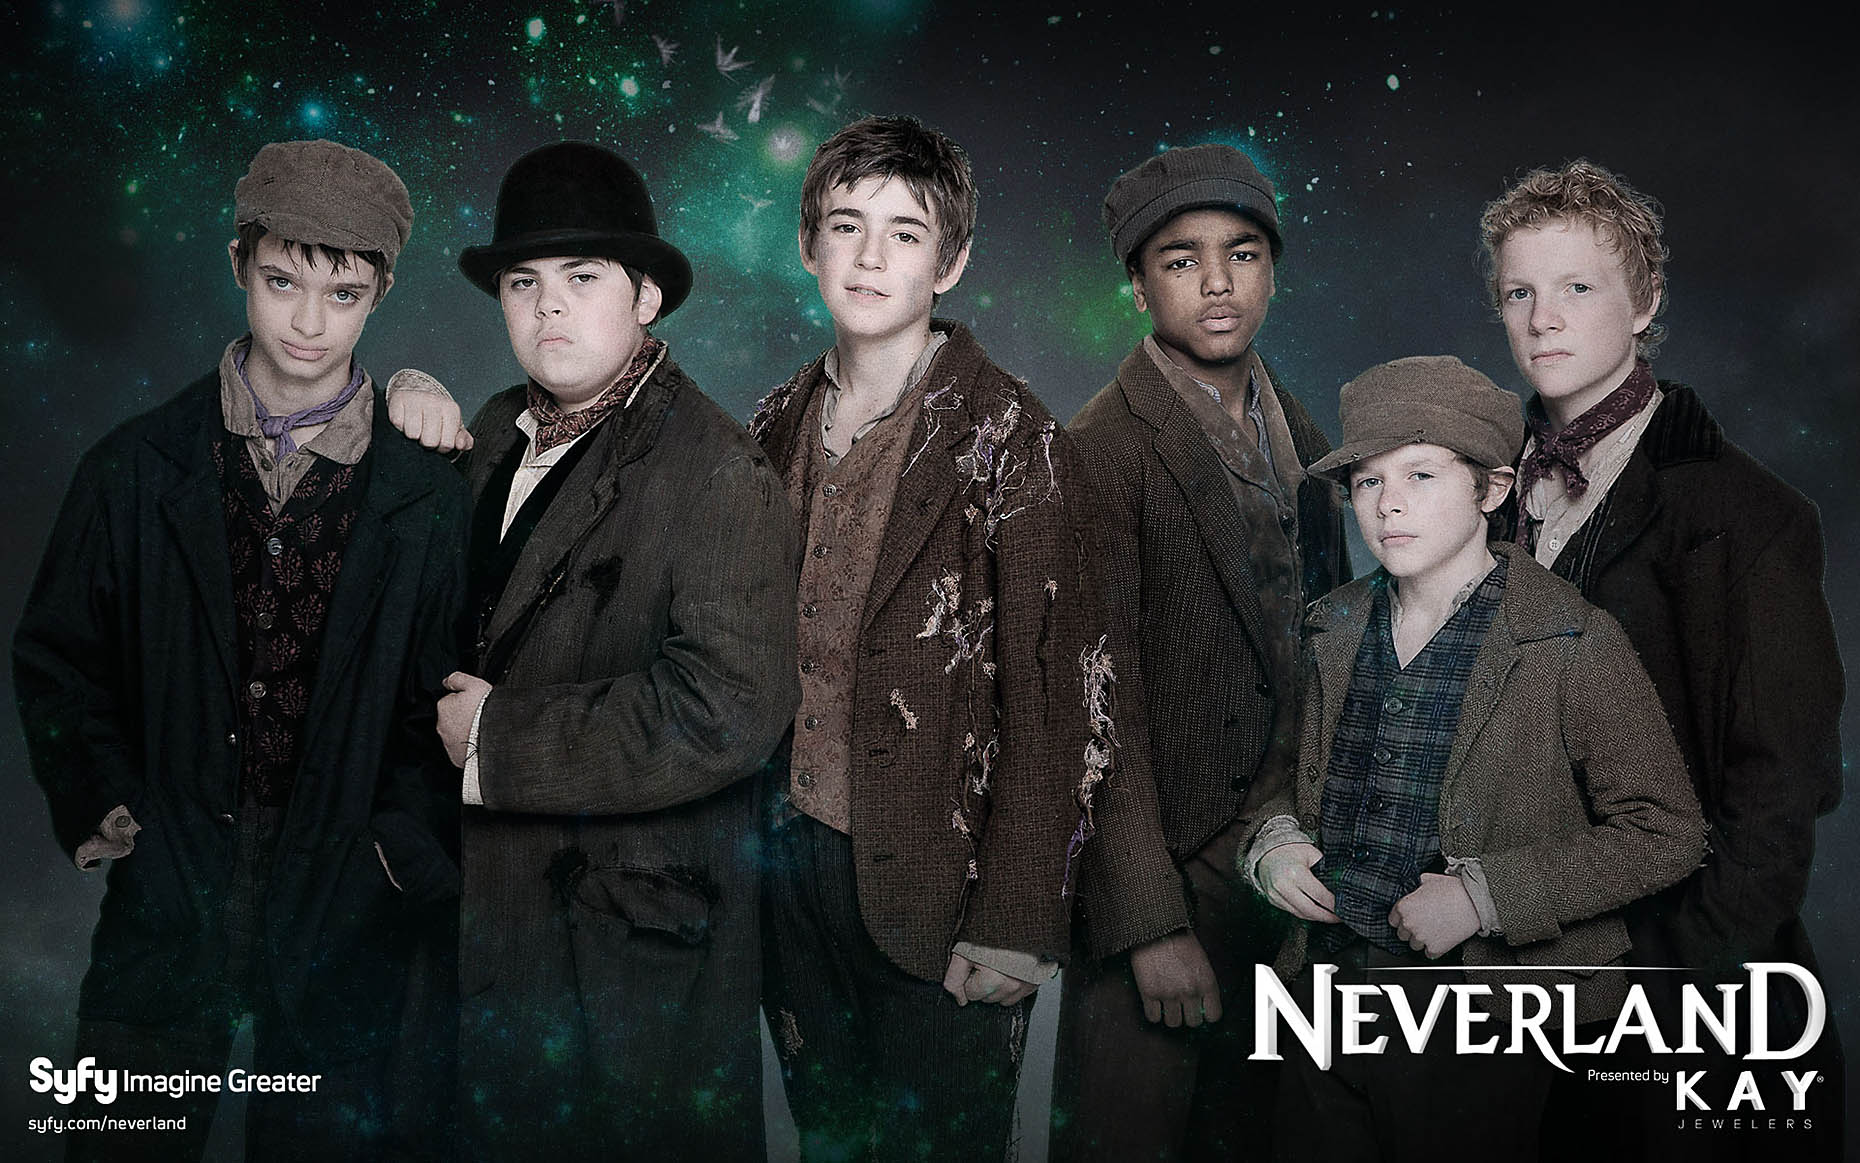 NEVERLAND Lost Boys Poster